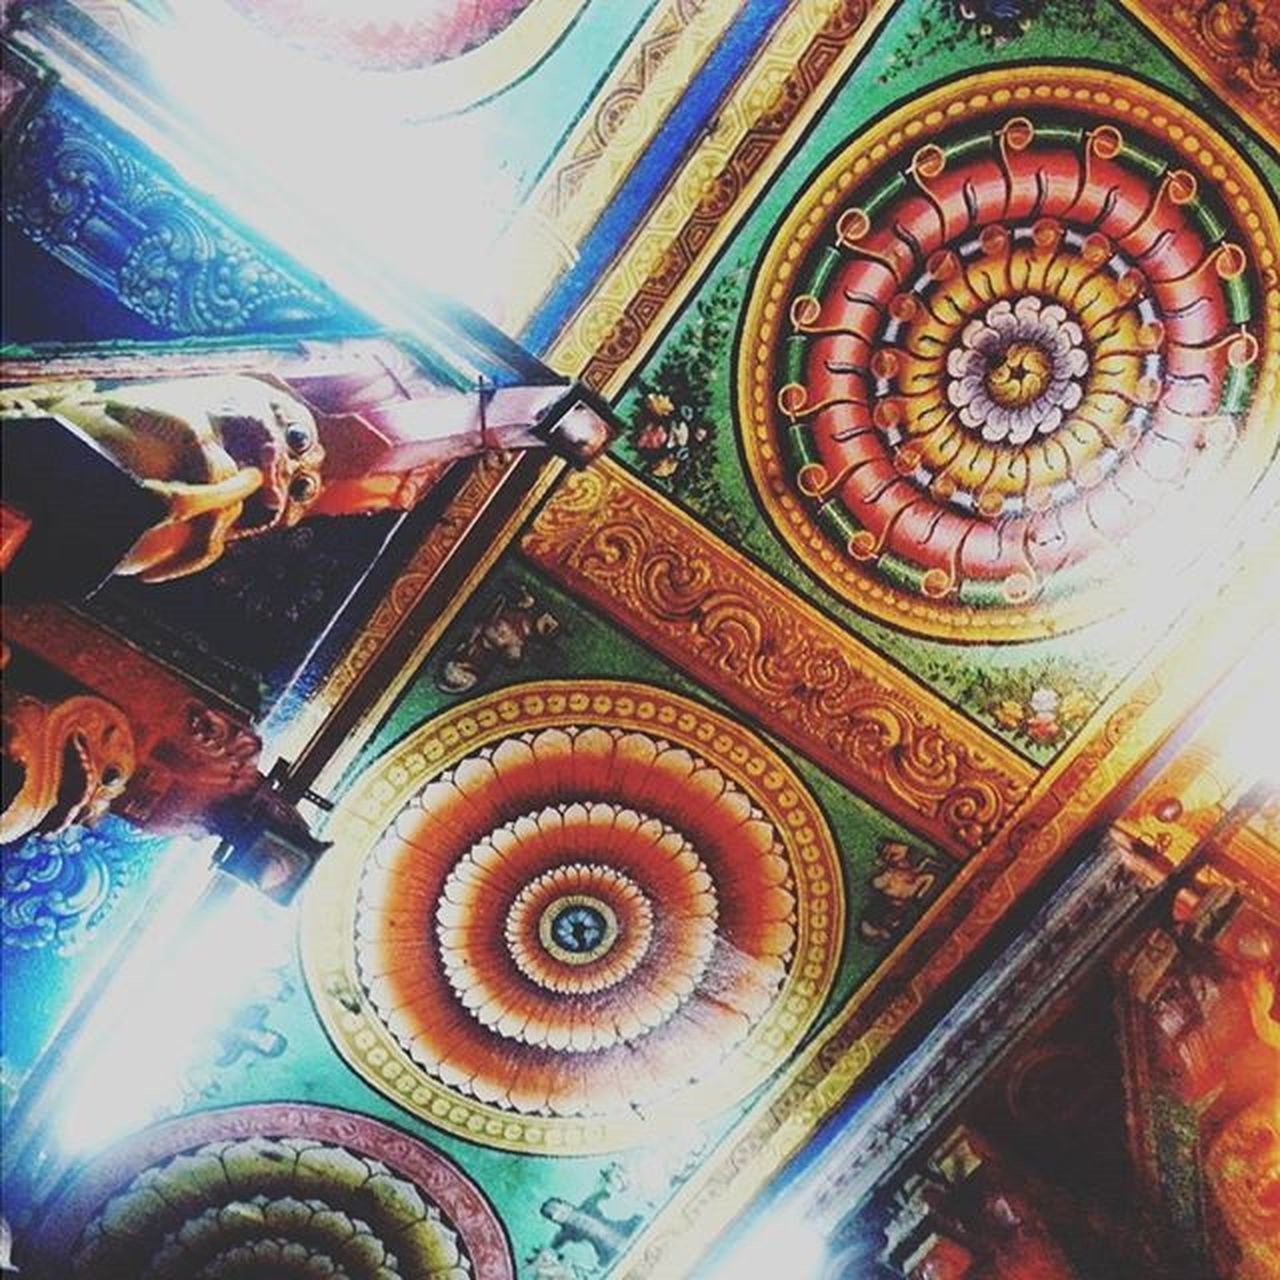 Ancient wall paintings! 😍 Paintings Colors Designs Beautiful MeenakshiTemple Meenakshiammantemple Madurai Indiantemple India Southindia _soi Instatravel Travel Travel Traveljournal Pixelpanda_india Incredibleindia Picturesofindia Indiapictures Beautifulindia Hippieinhills Indiatravelgram Desi_diaries India Indianarchitecture temple temples indiaclicks